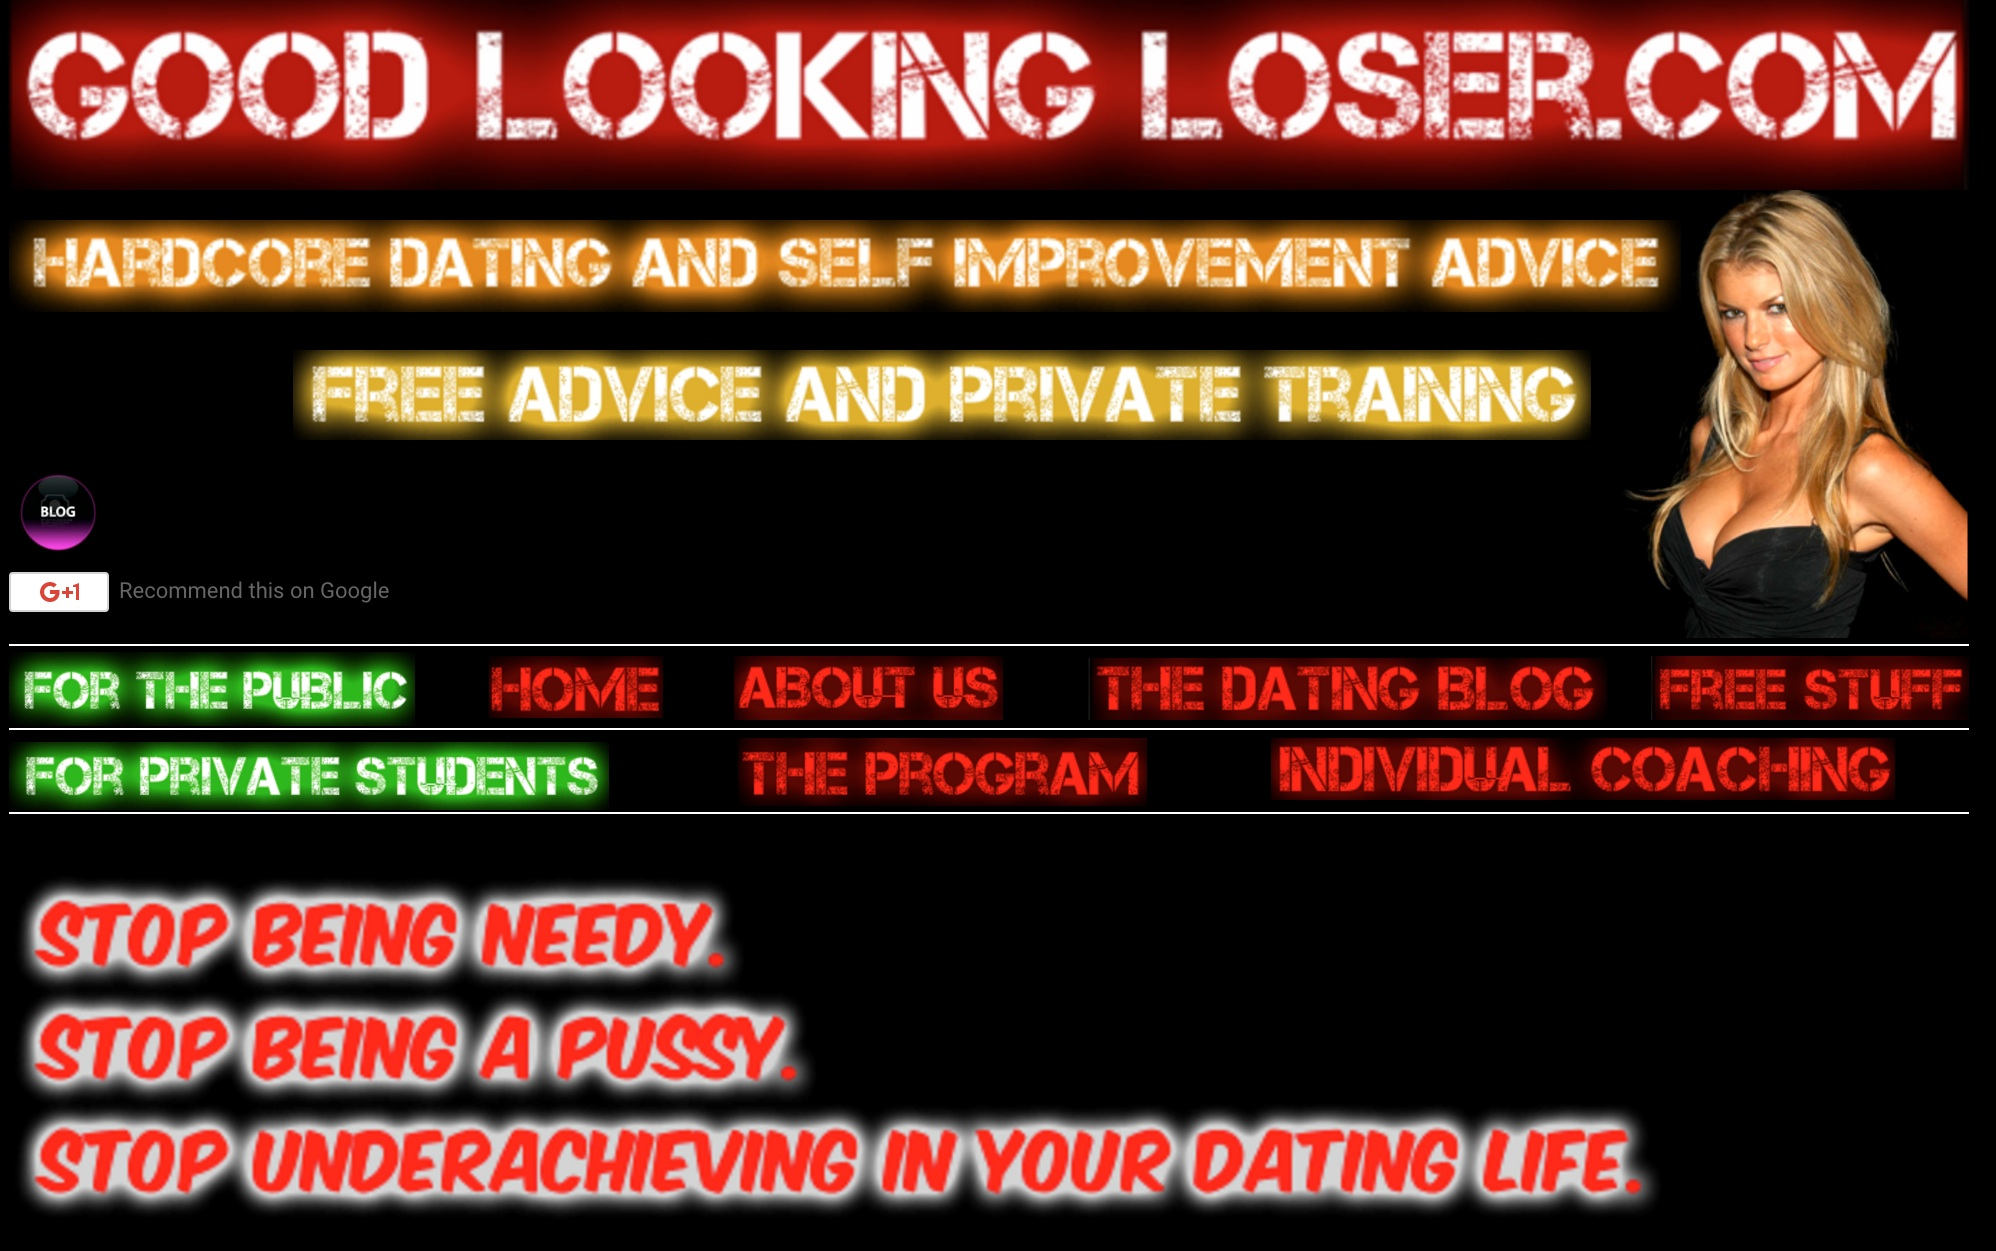 Good looking loser online dating